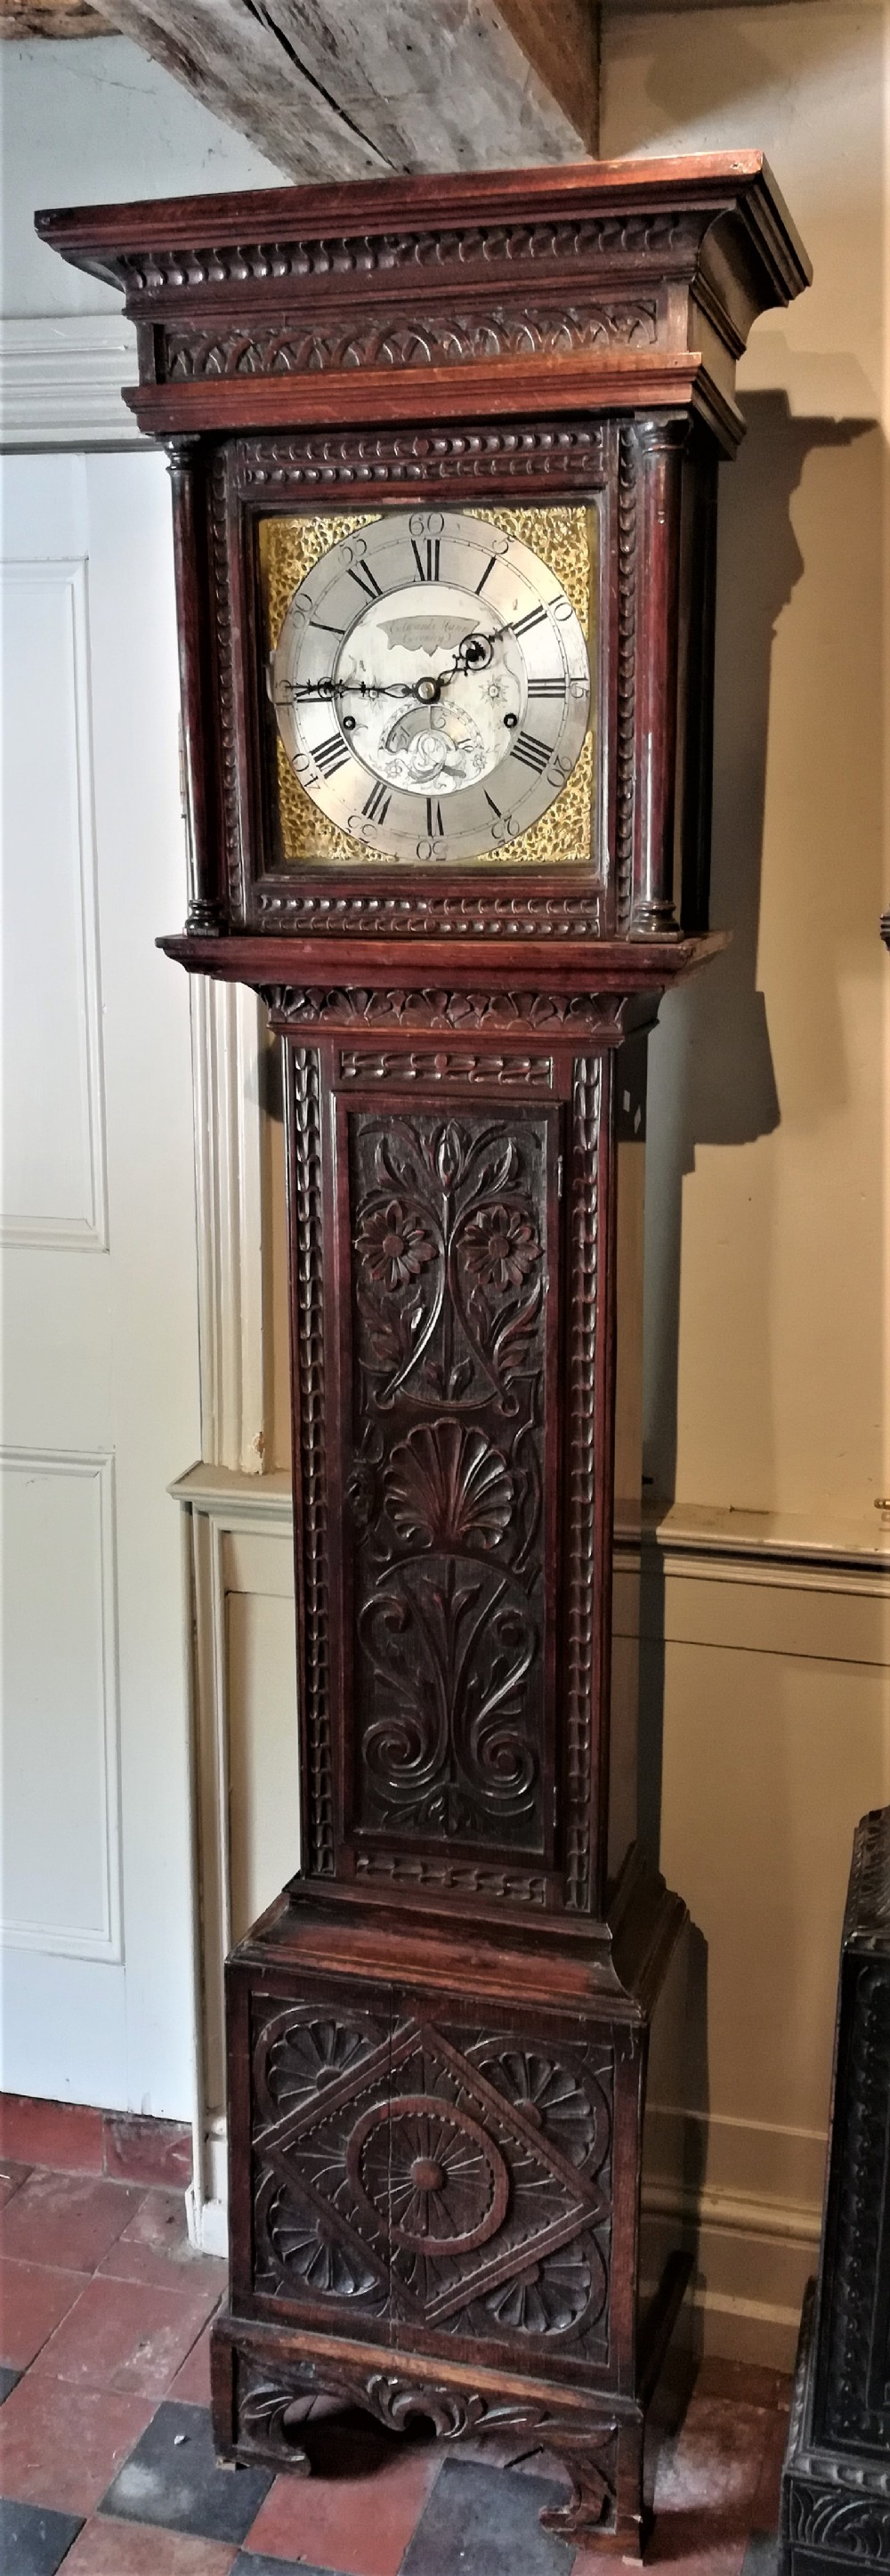 18th cent carved oak 8 day long case grandfather clock